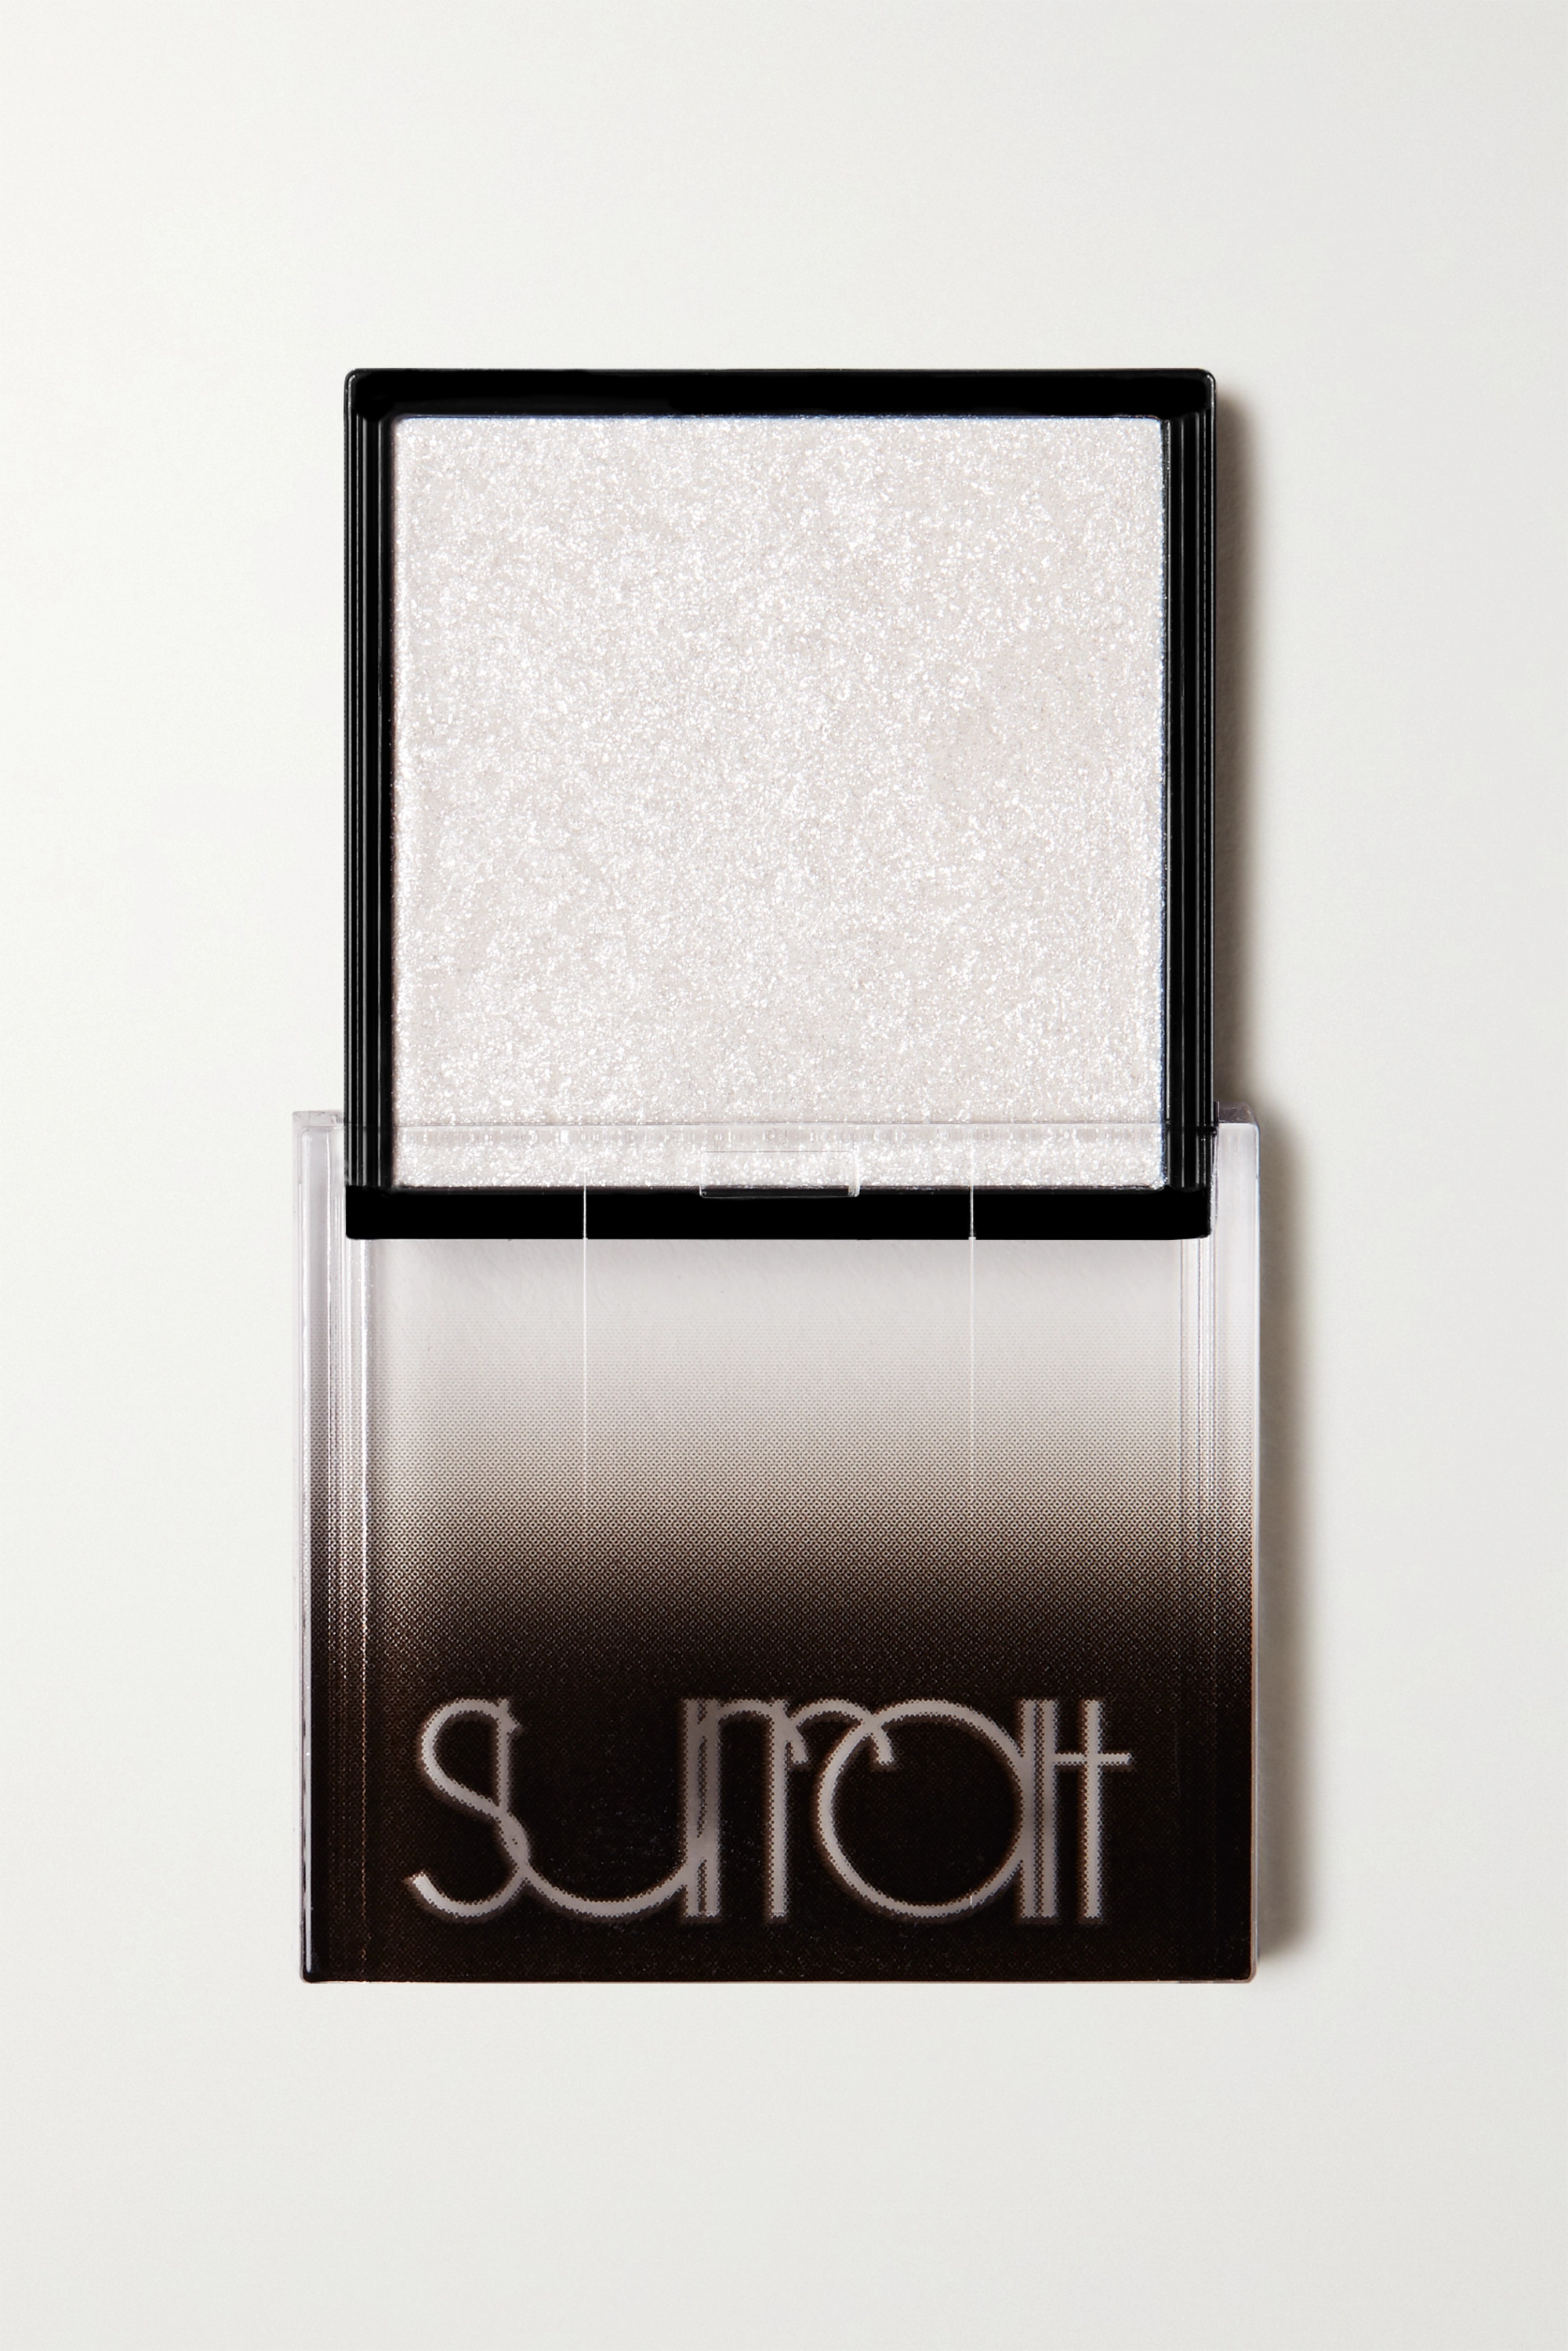 Surratt Beauty Halogram Eyeshadow – Interstellar – Lidschatten